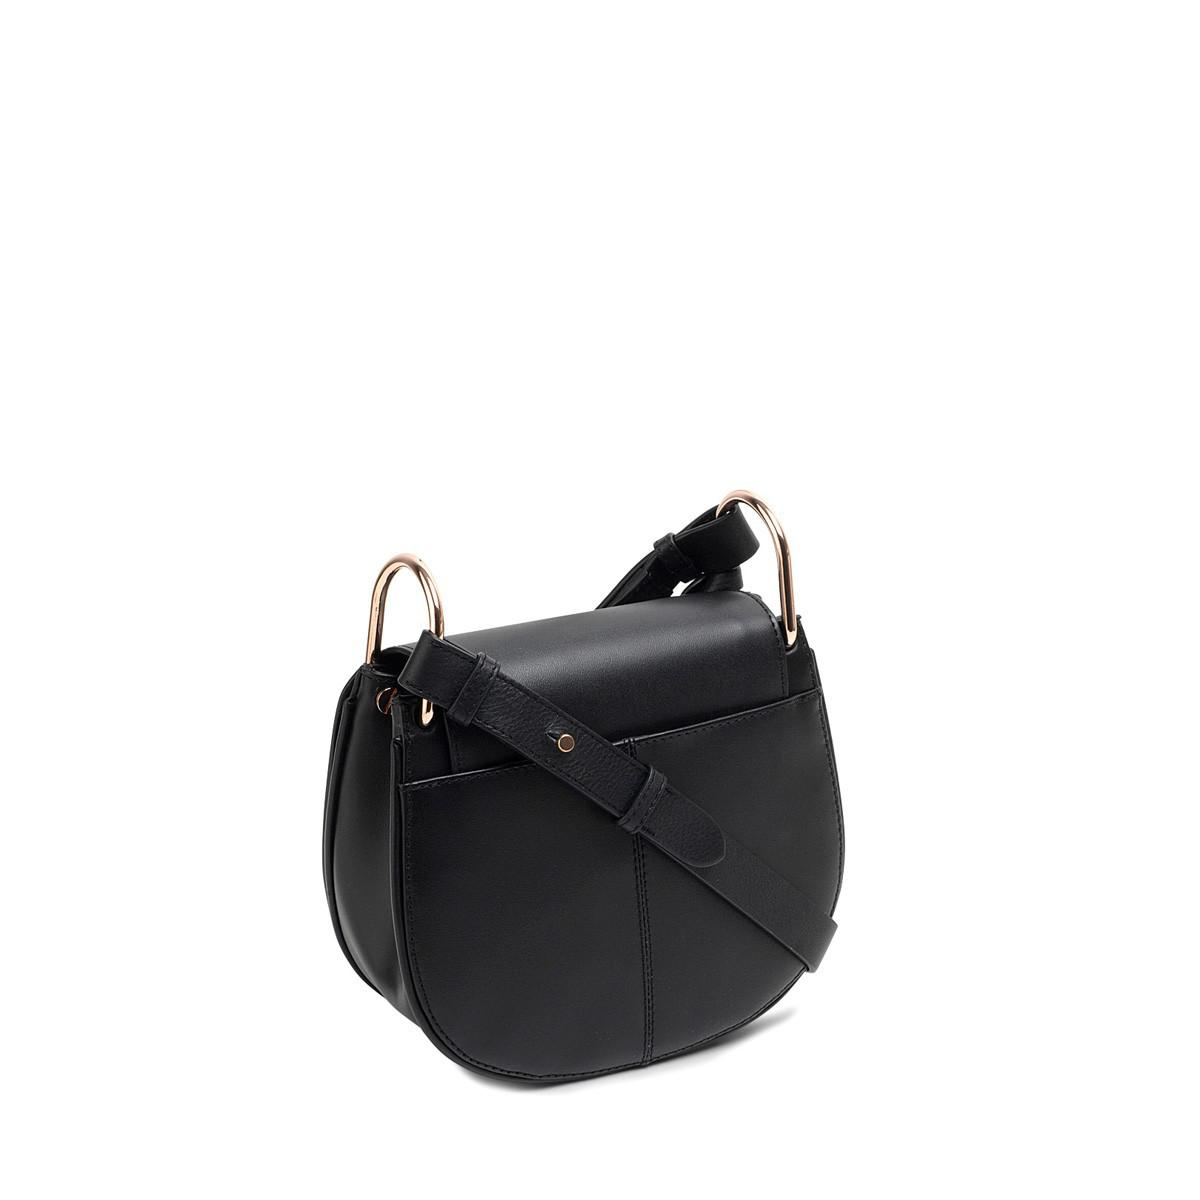 Radley Leather Camley Street Small Flapover Cross Body in Black